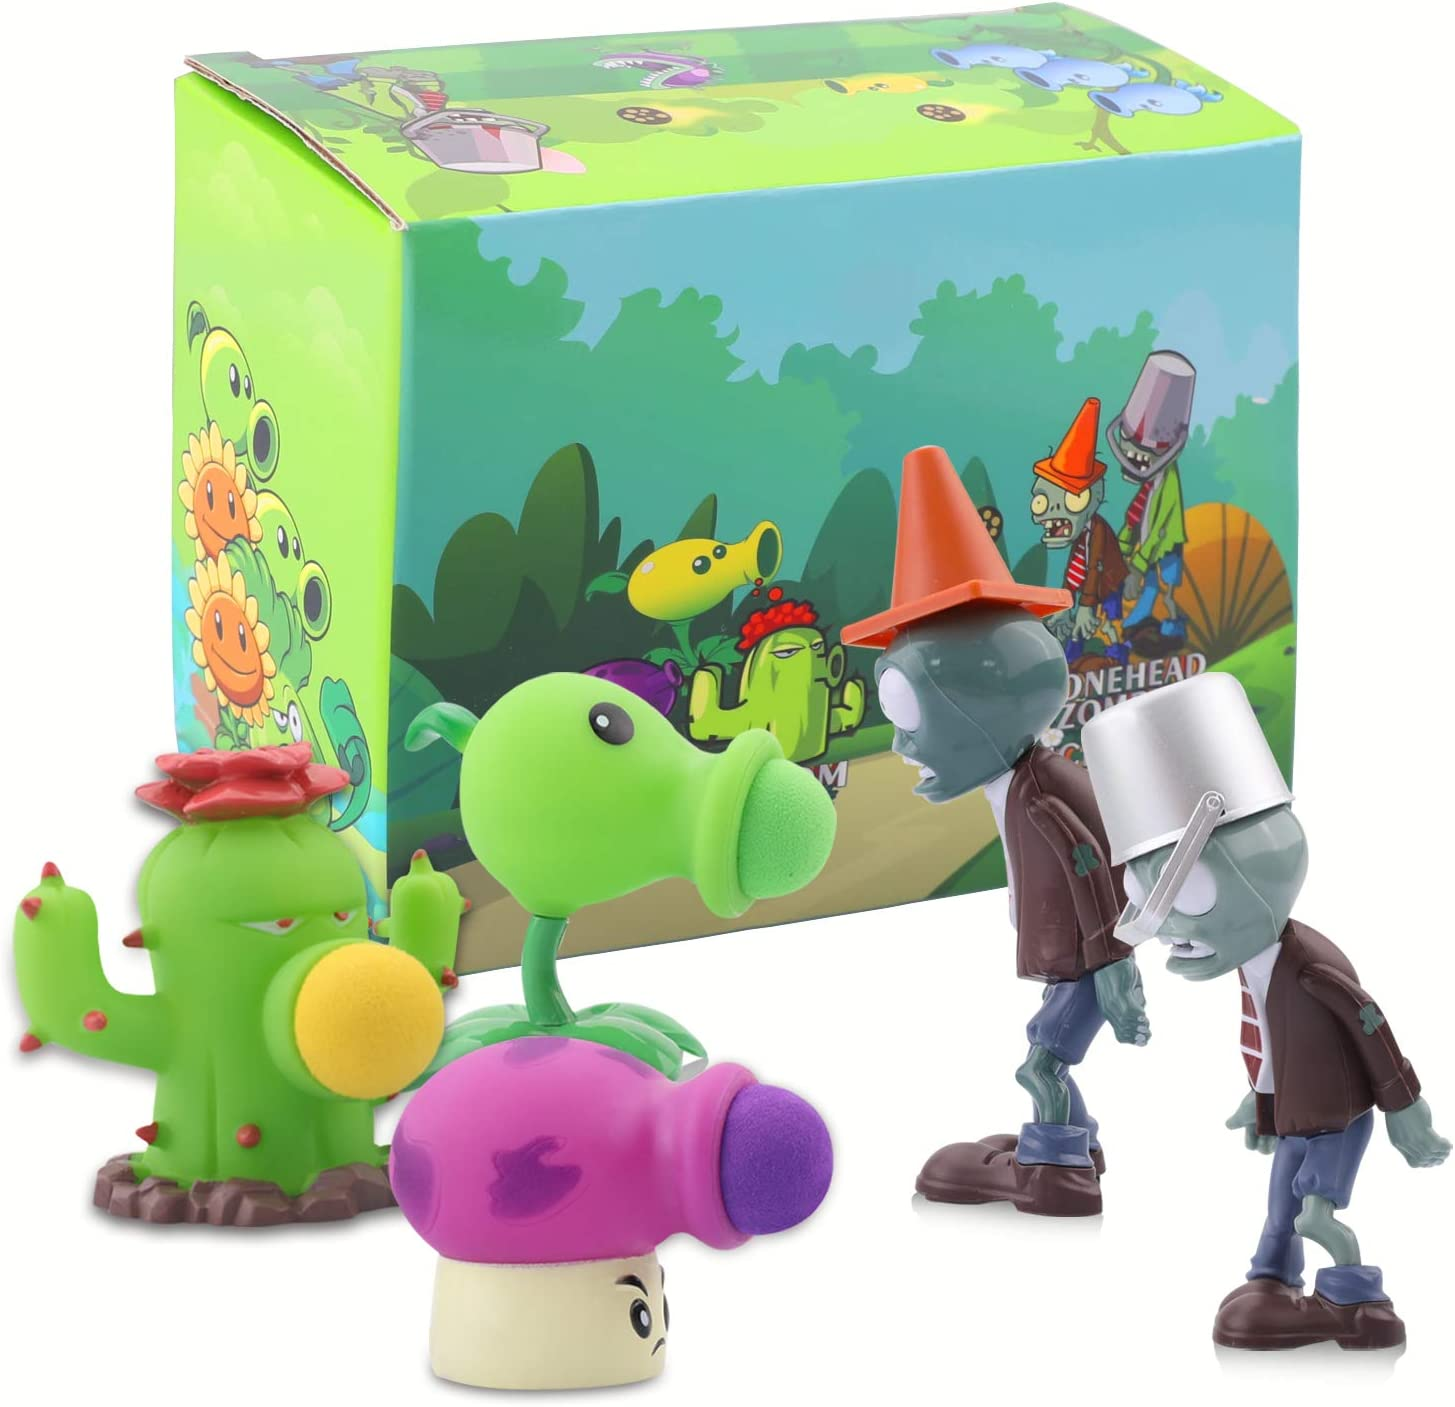 Maikerry 5 PCS Plants vs. Zombies 2 Series Toys Doll Characters Soft Vinyl Hard Plastic can Launch Figures,Great Gifts for Kids and Fans,Birthday and Christmas Party